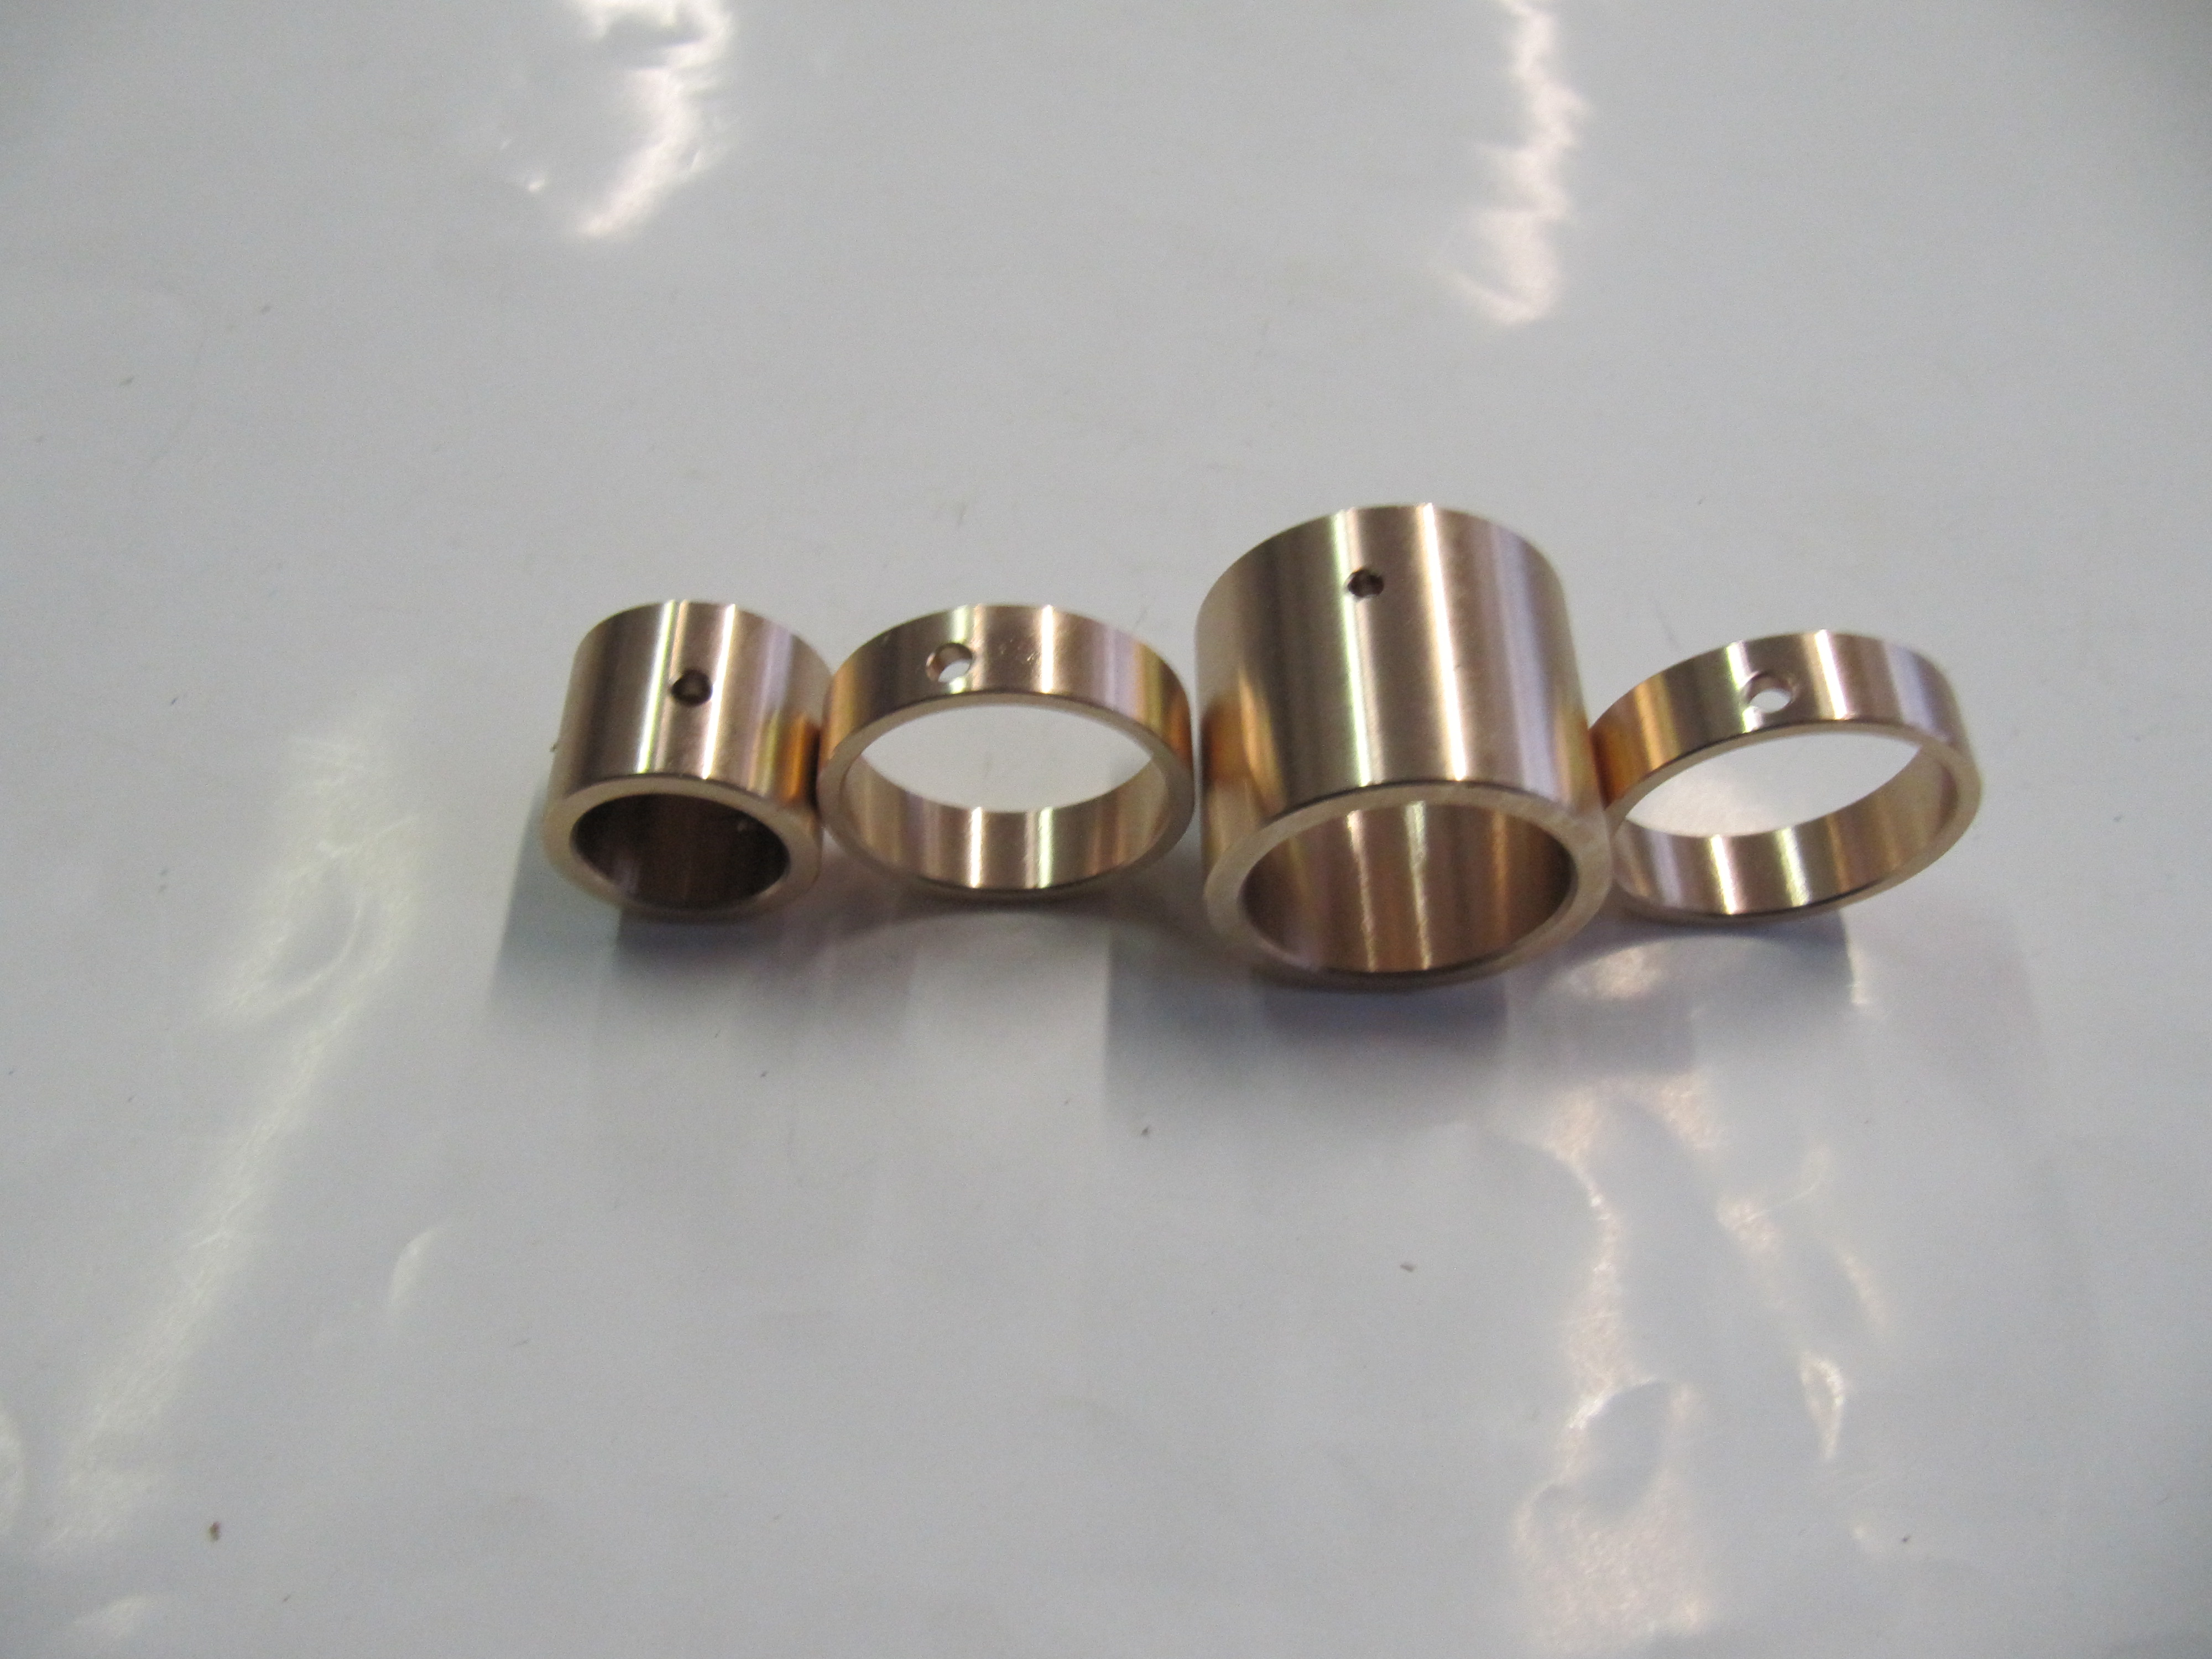 CAV223 - CAM SHAFT BUSHES SET